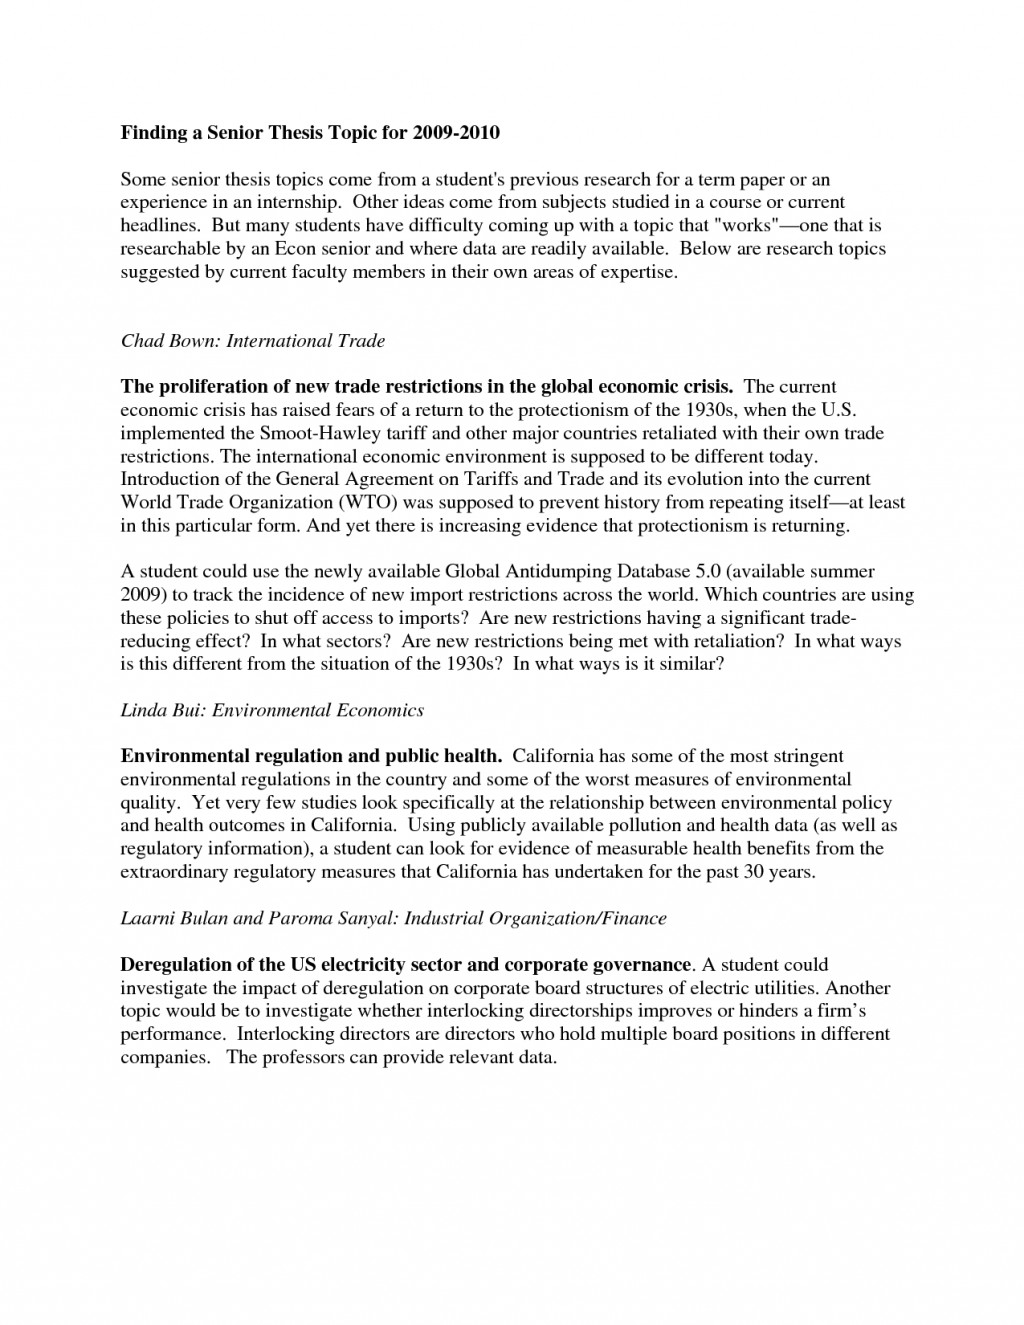 004 Research Paper High School Topic 384737 In Unusual Economics Related To Home Topics On Development Pdf Large